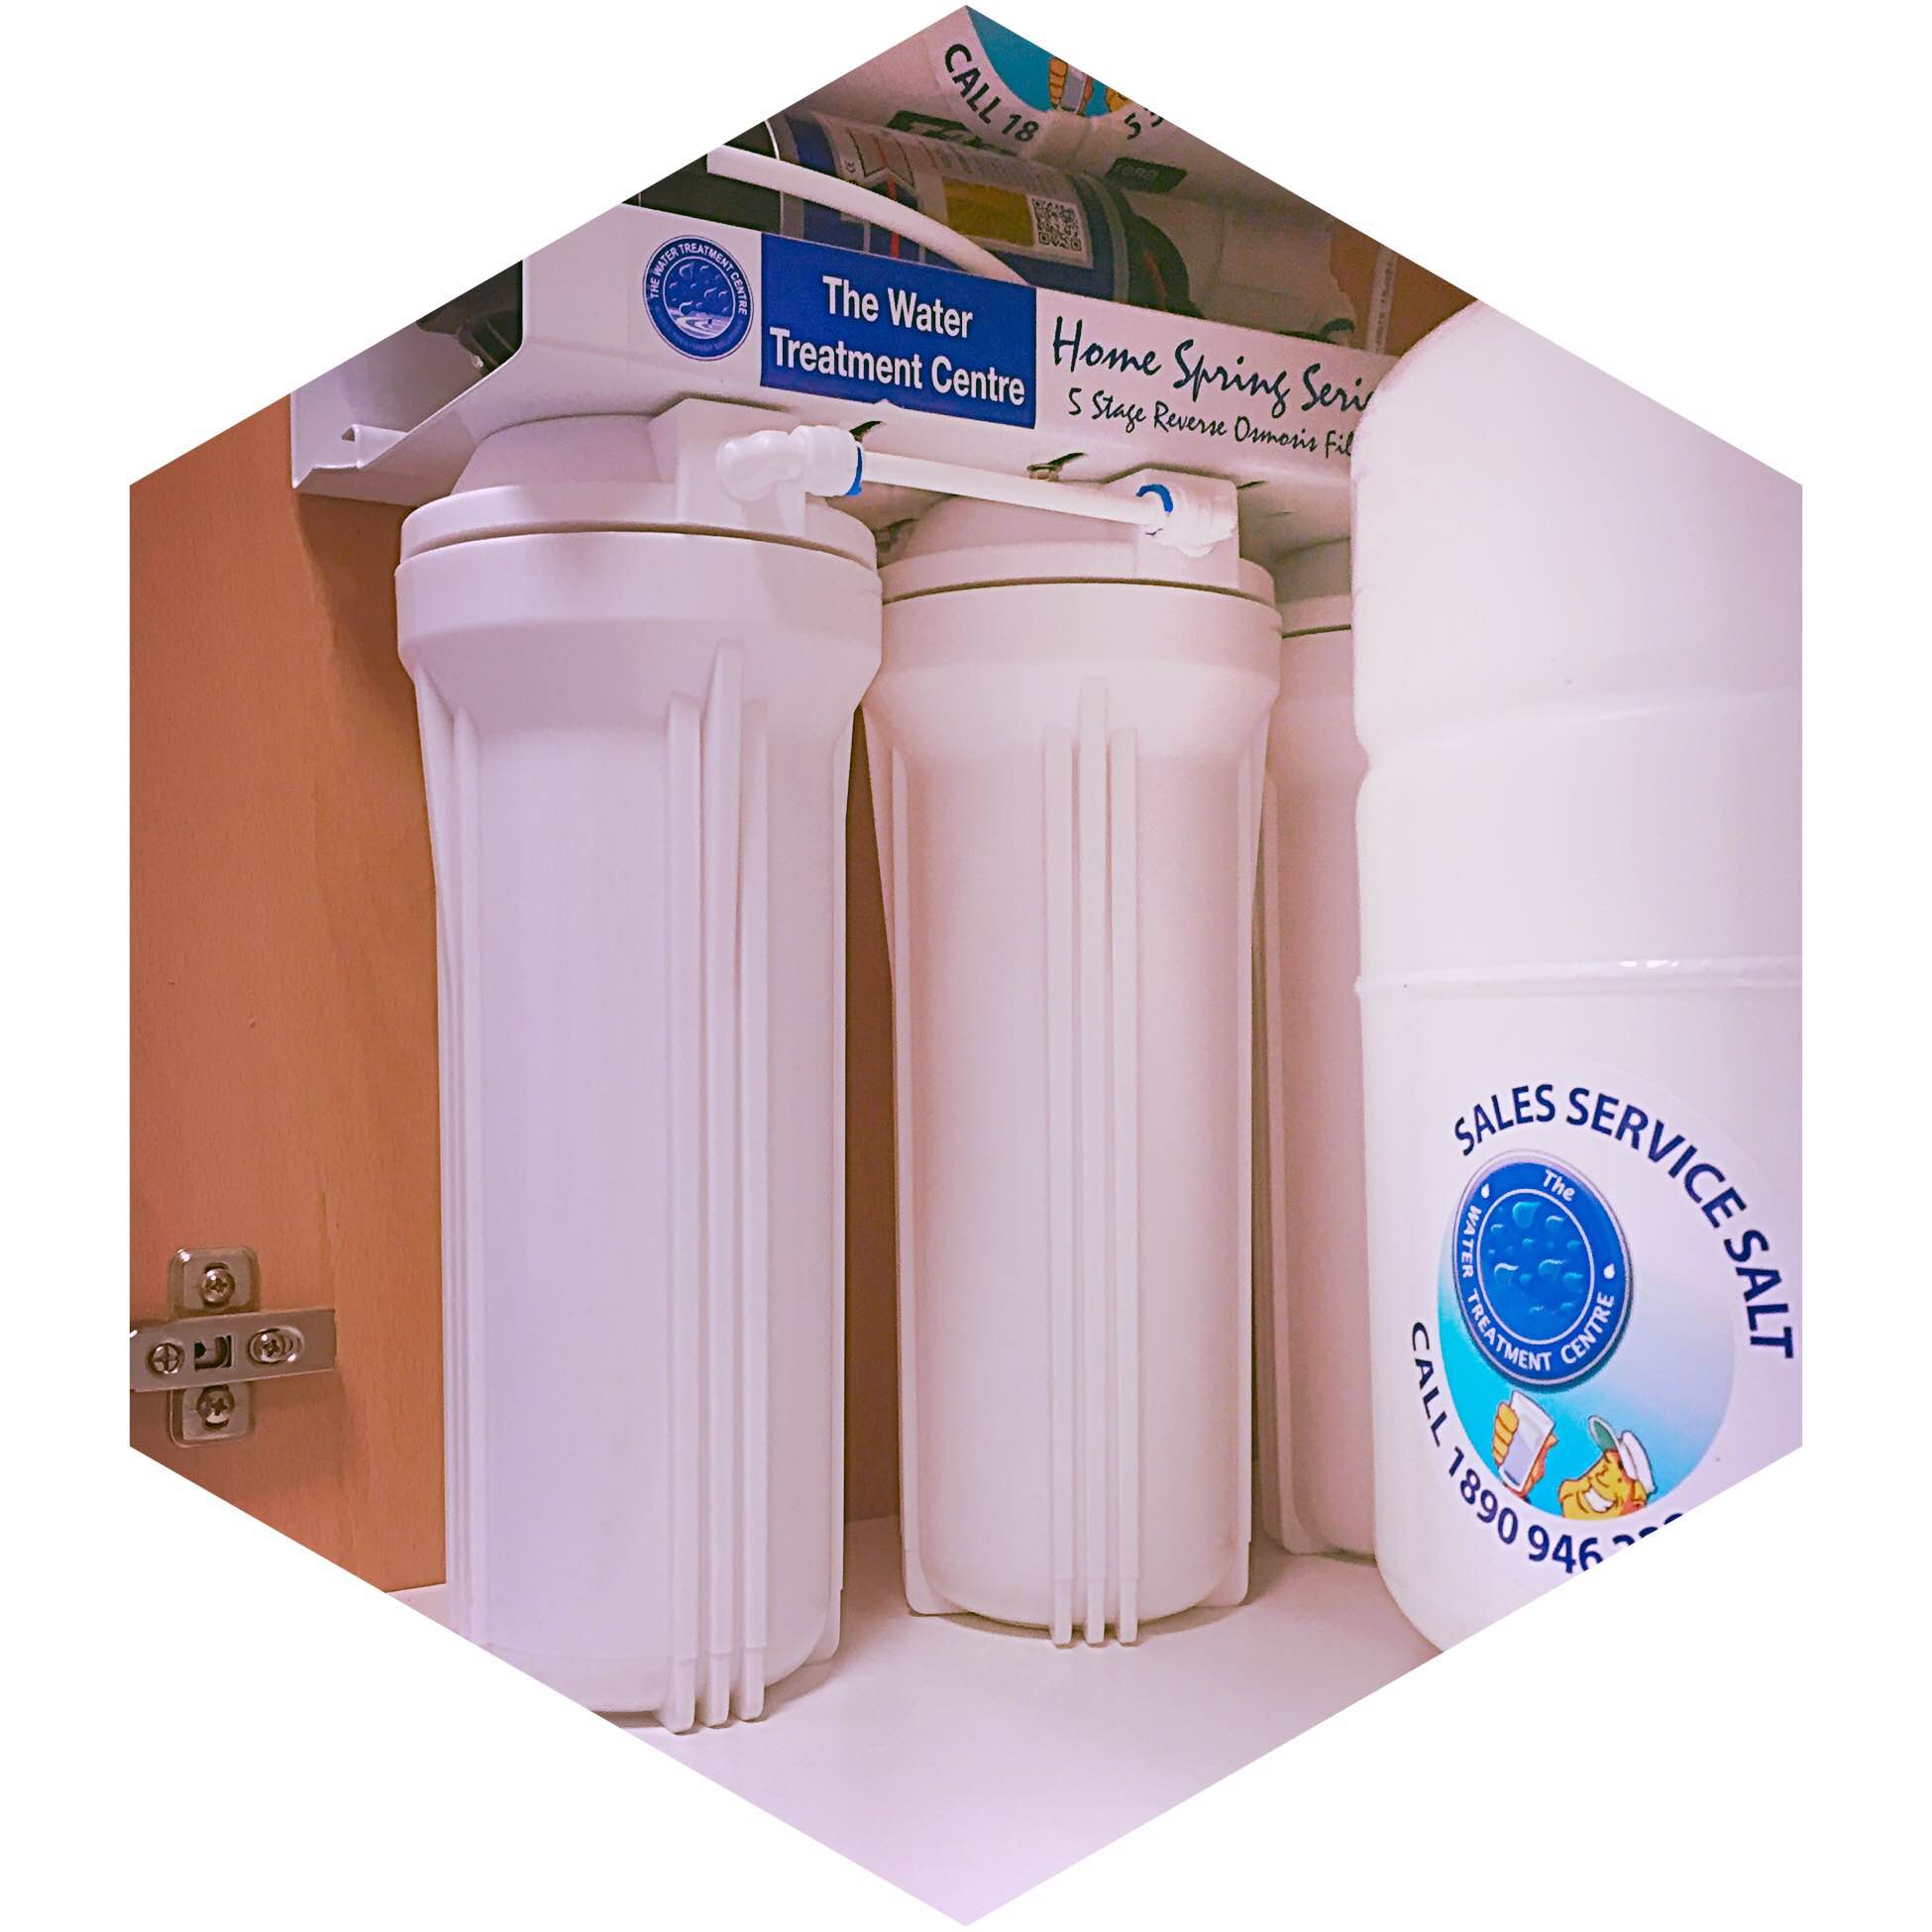 5 Stage Reverse Osmosis Water Filter The Water Treatment